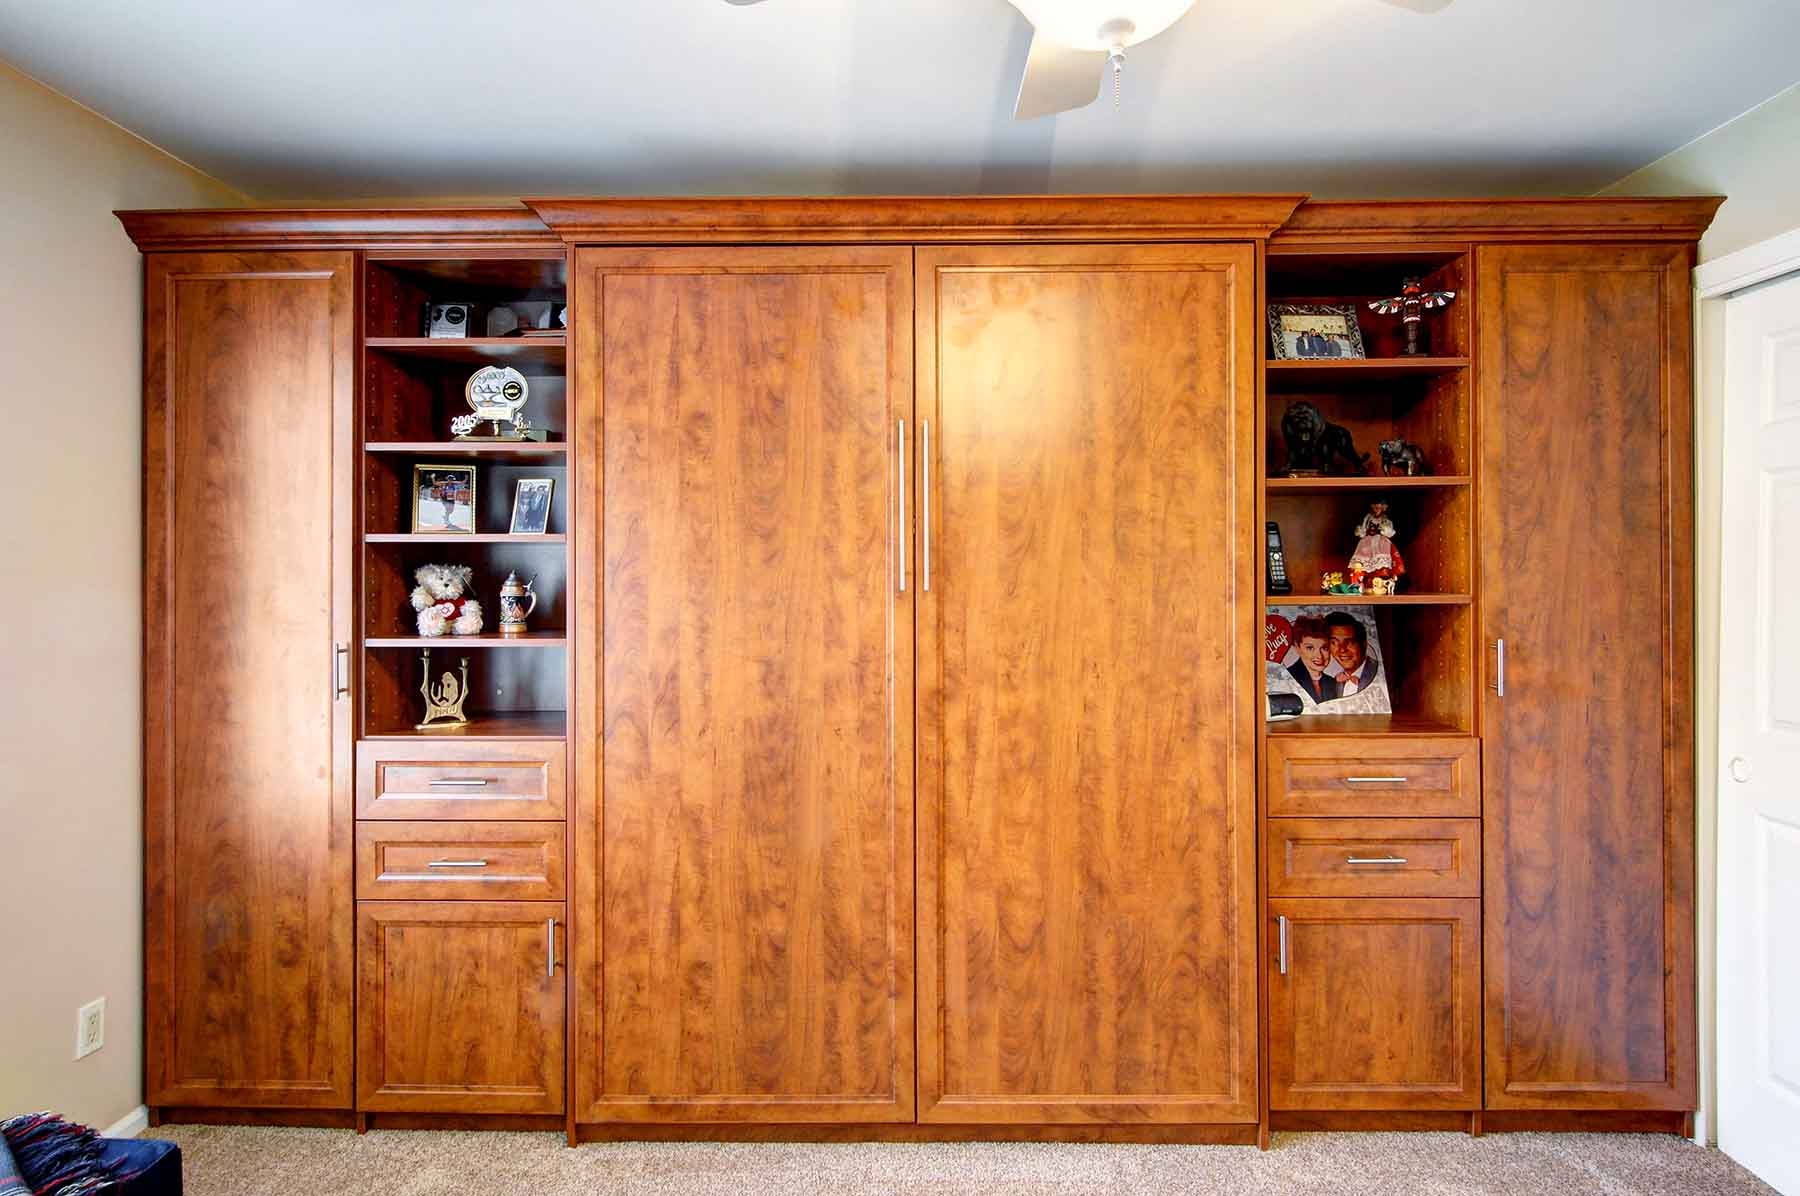 The Value of a Murphy Bed